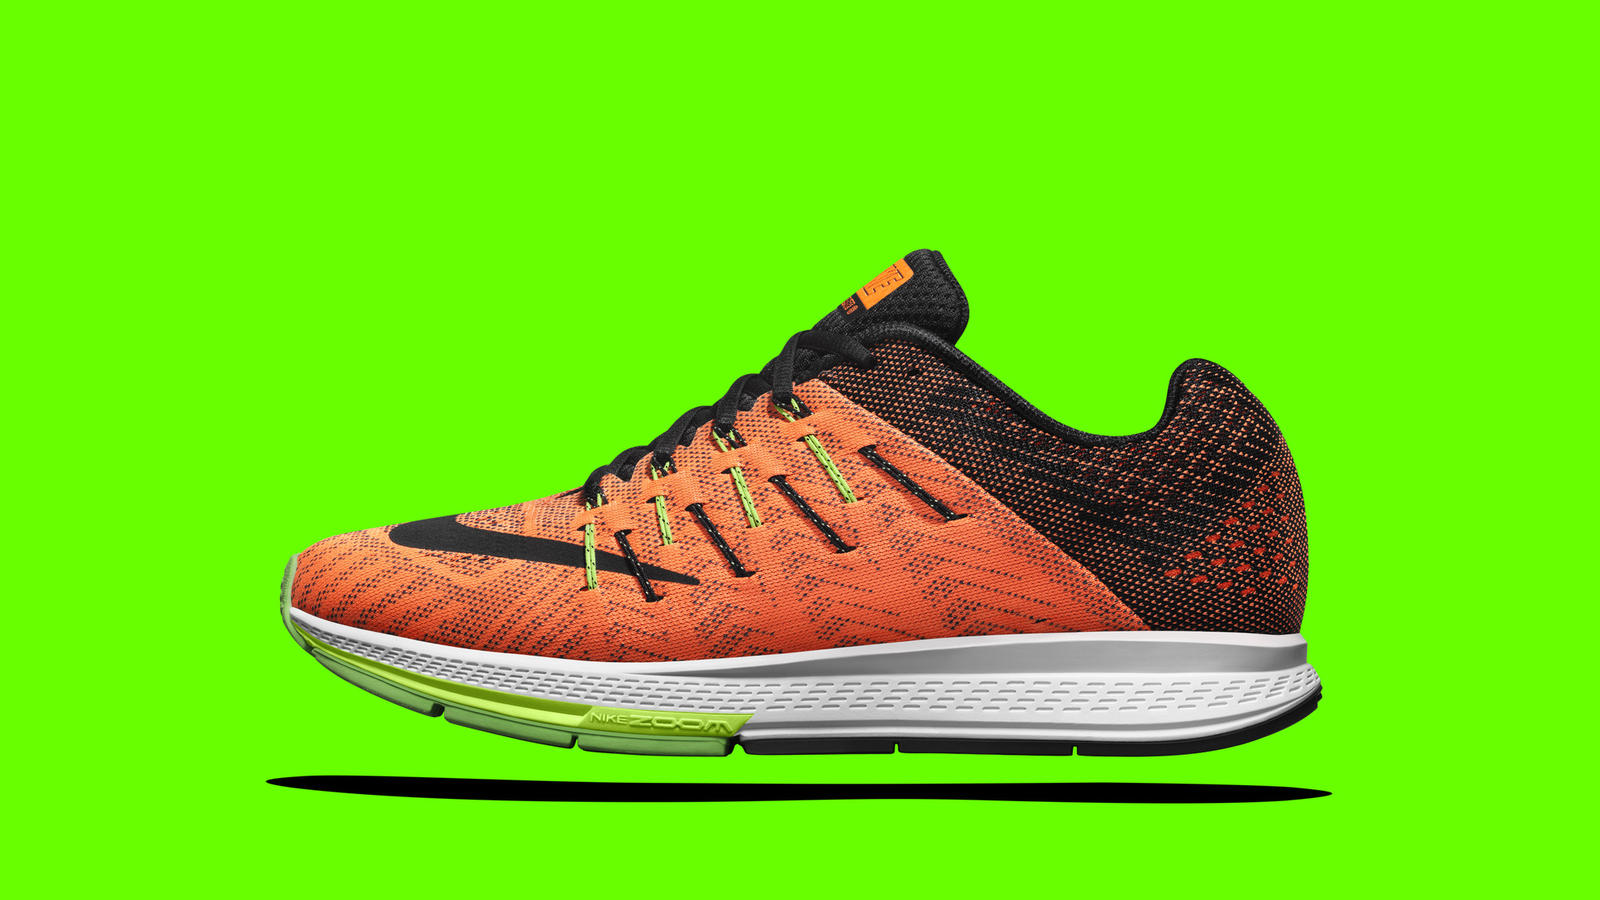 Men's Nike Air Zoom Elite 8